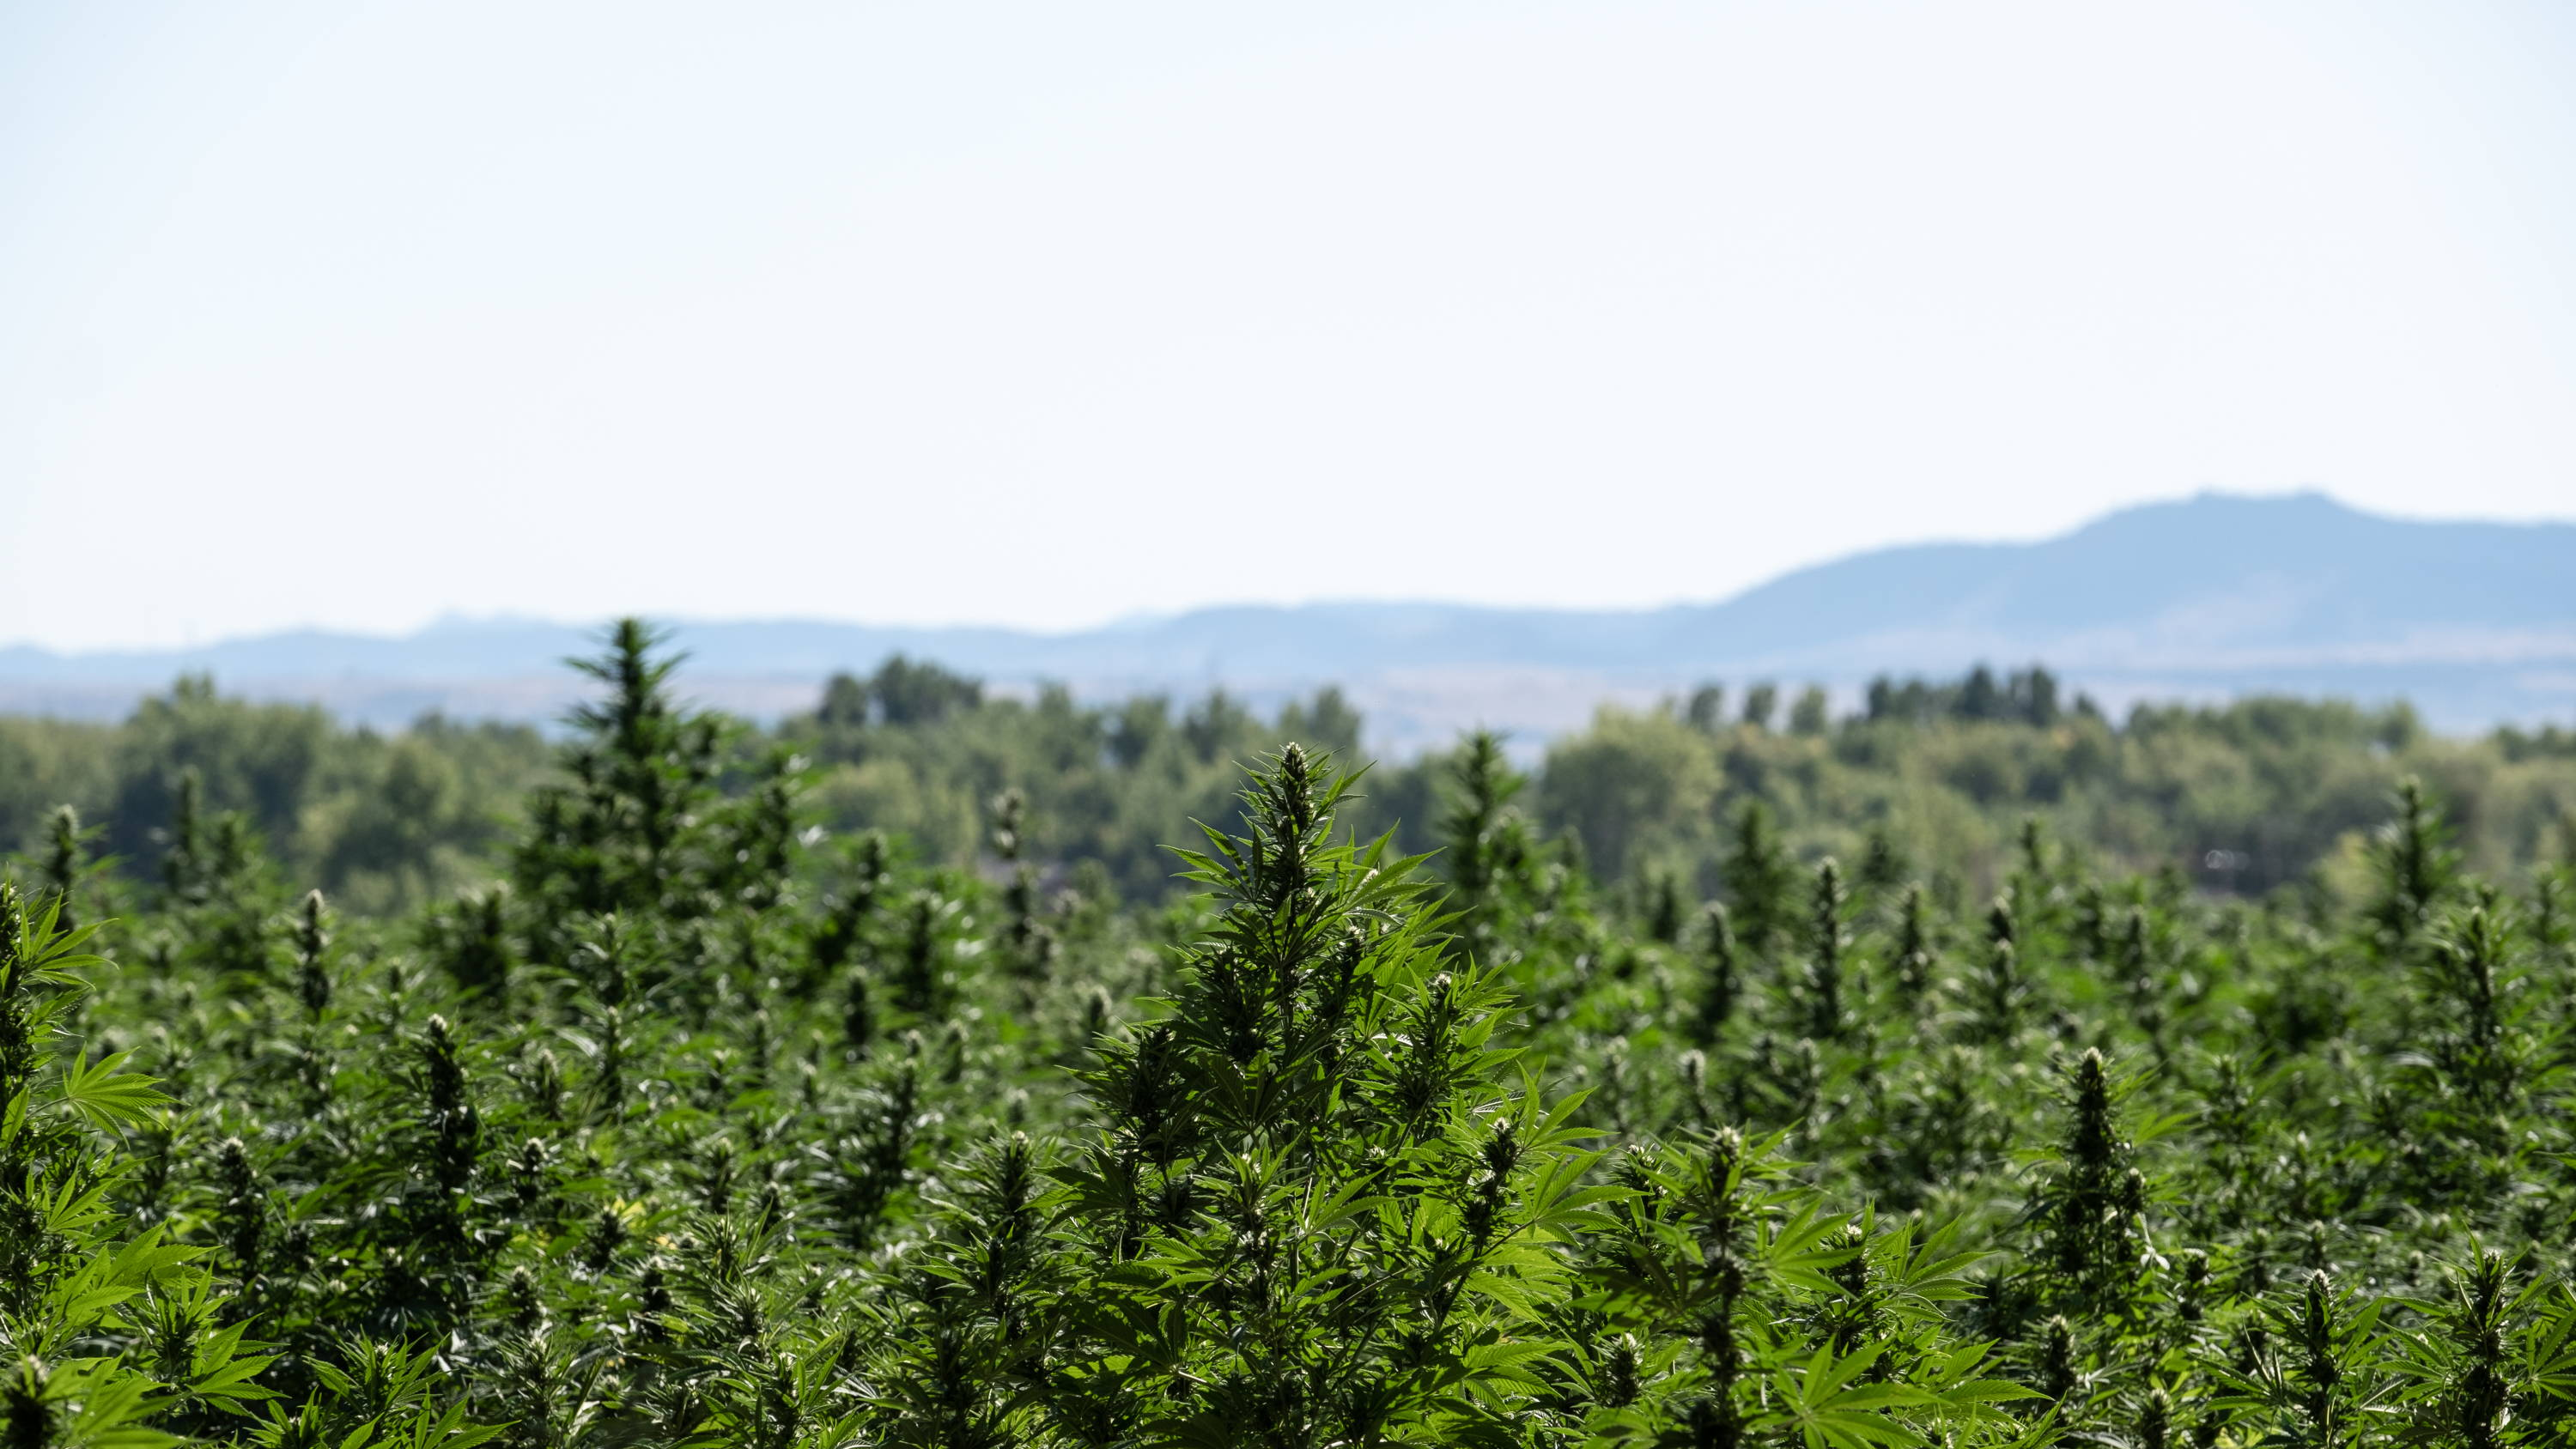 CBD For Life uses CBD from hemp grown in Colorado. Our CBD is of the highest quality. Our CBD is tested regularly for purity and potency. CBD